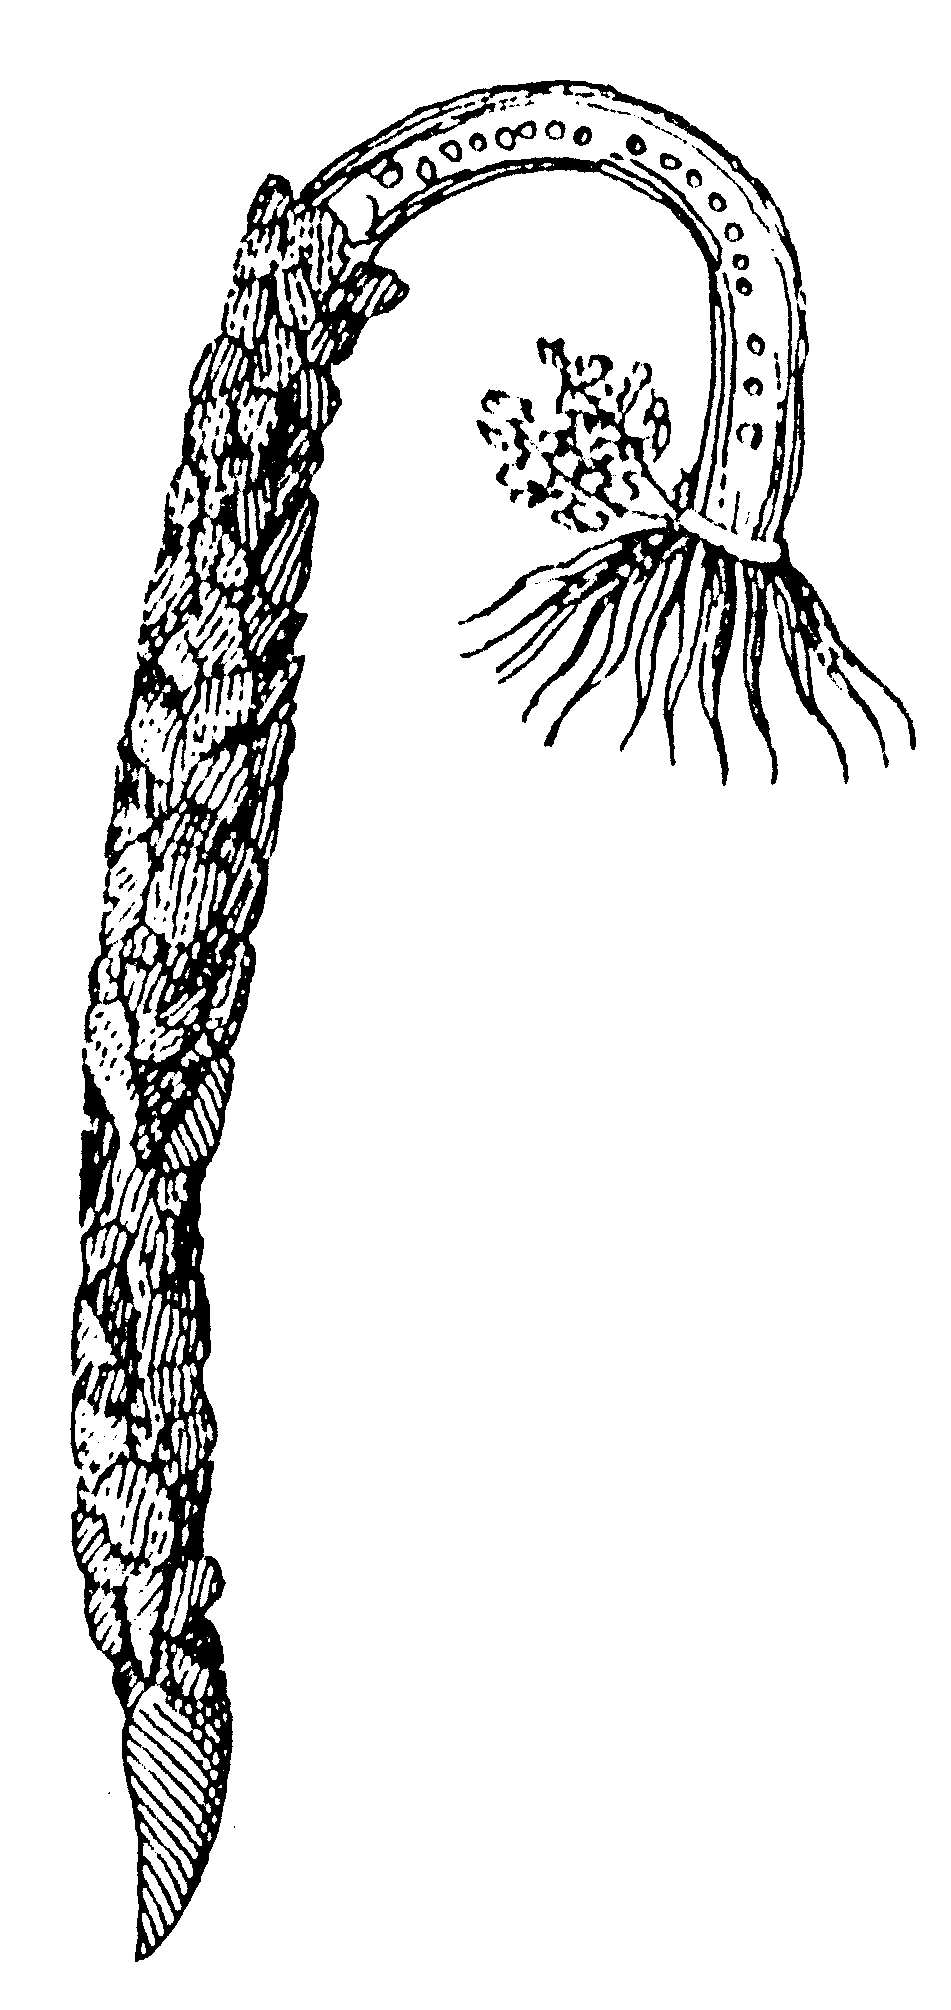 more resources about annelids the shape of life the story of